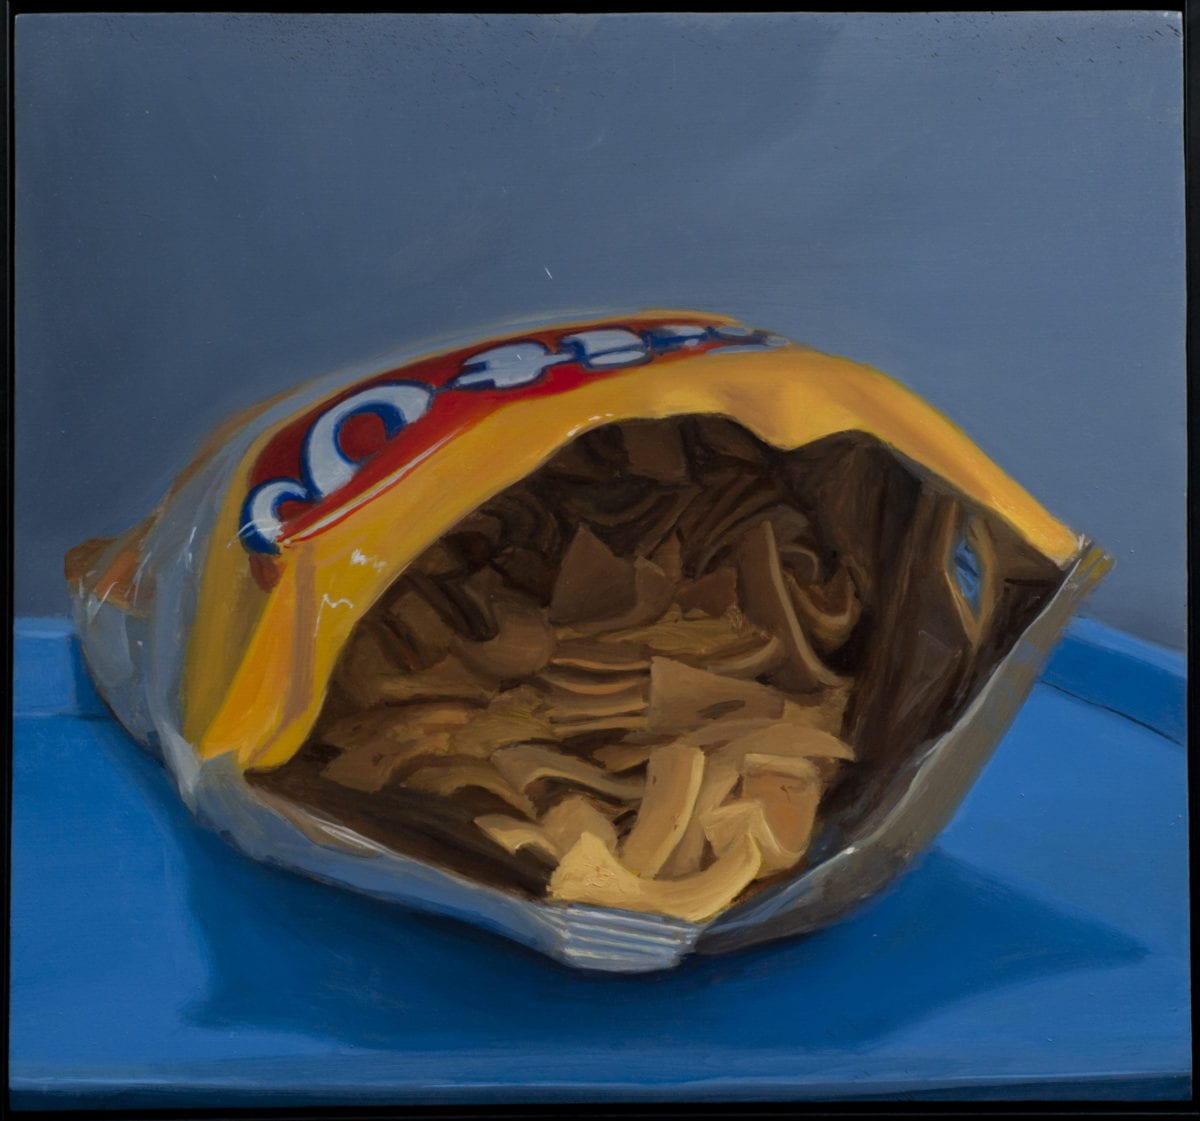 Fritos 10x10 inches oil on panel